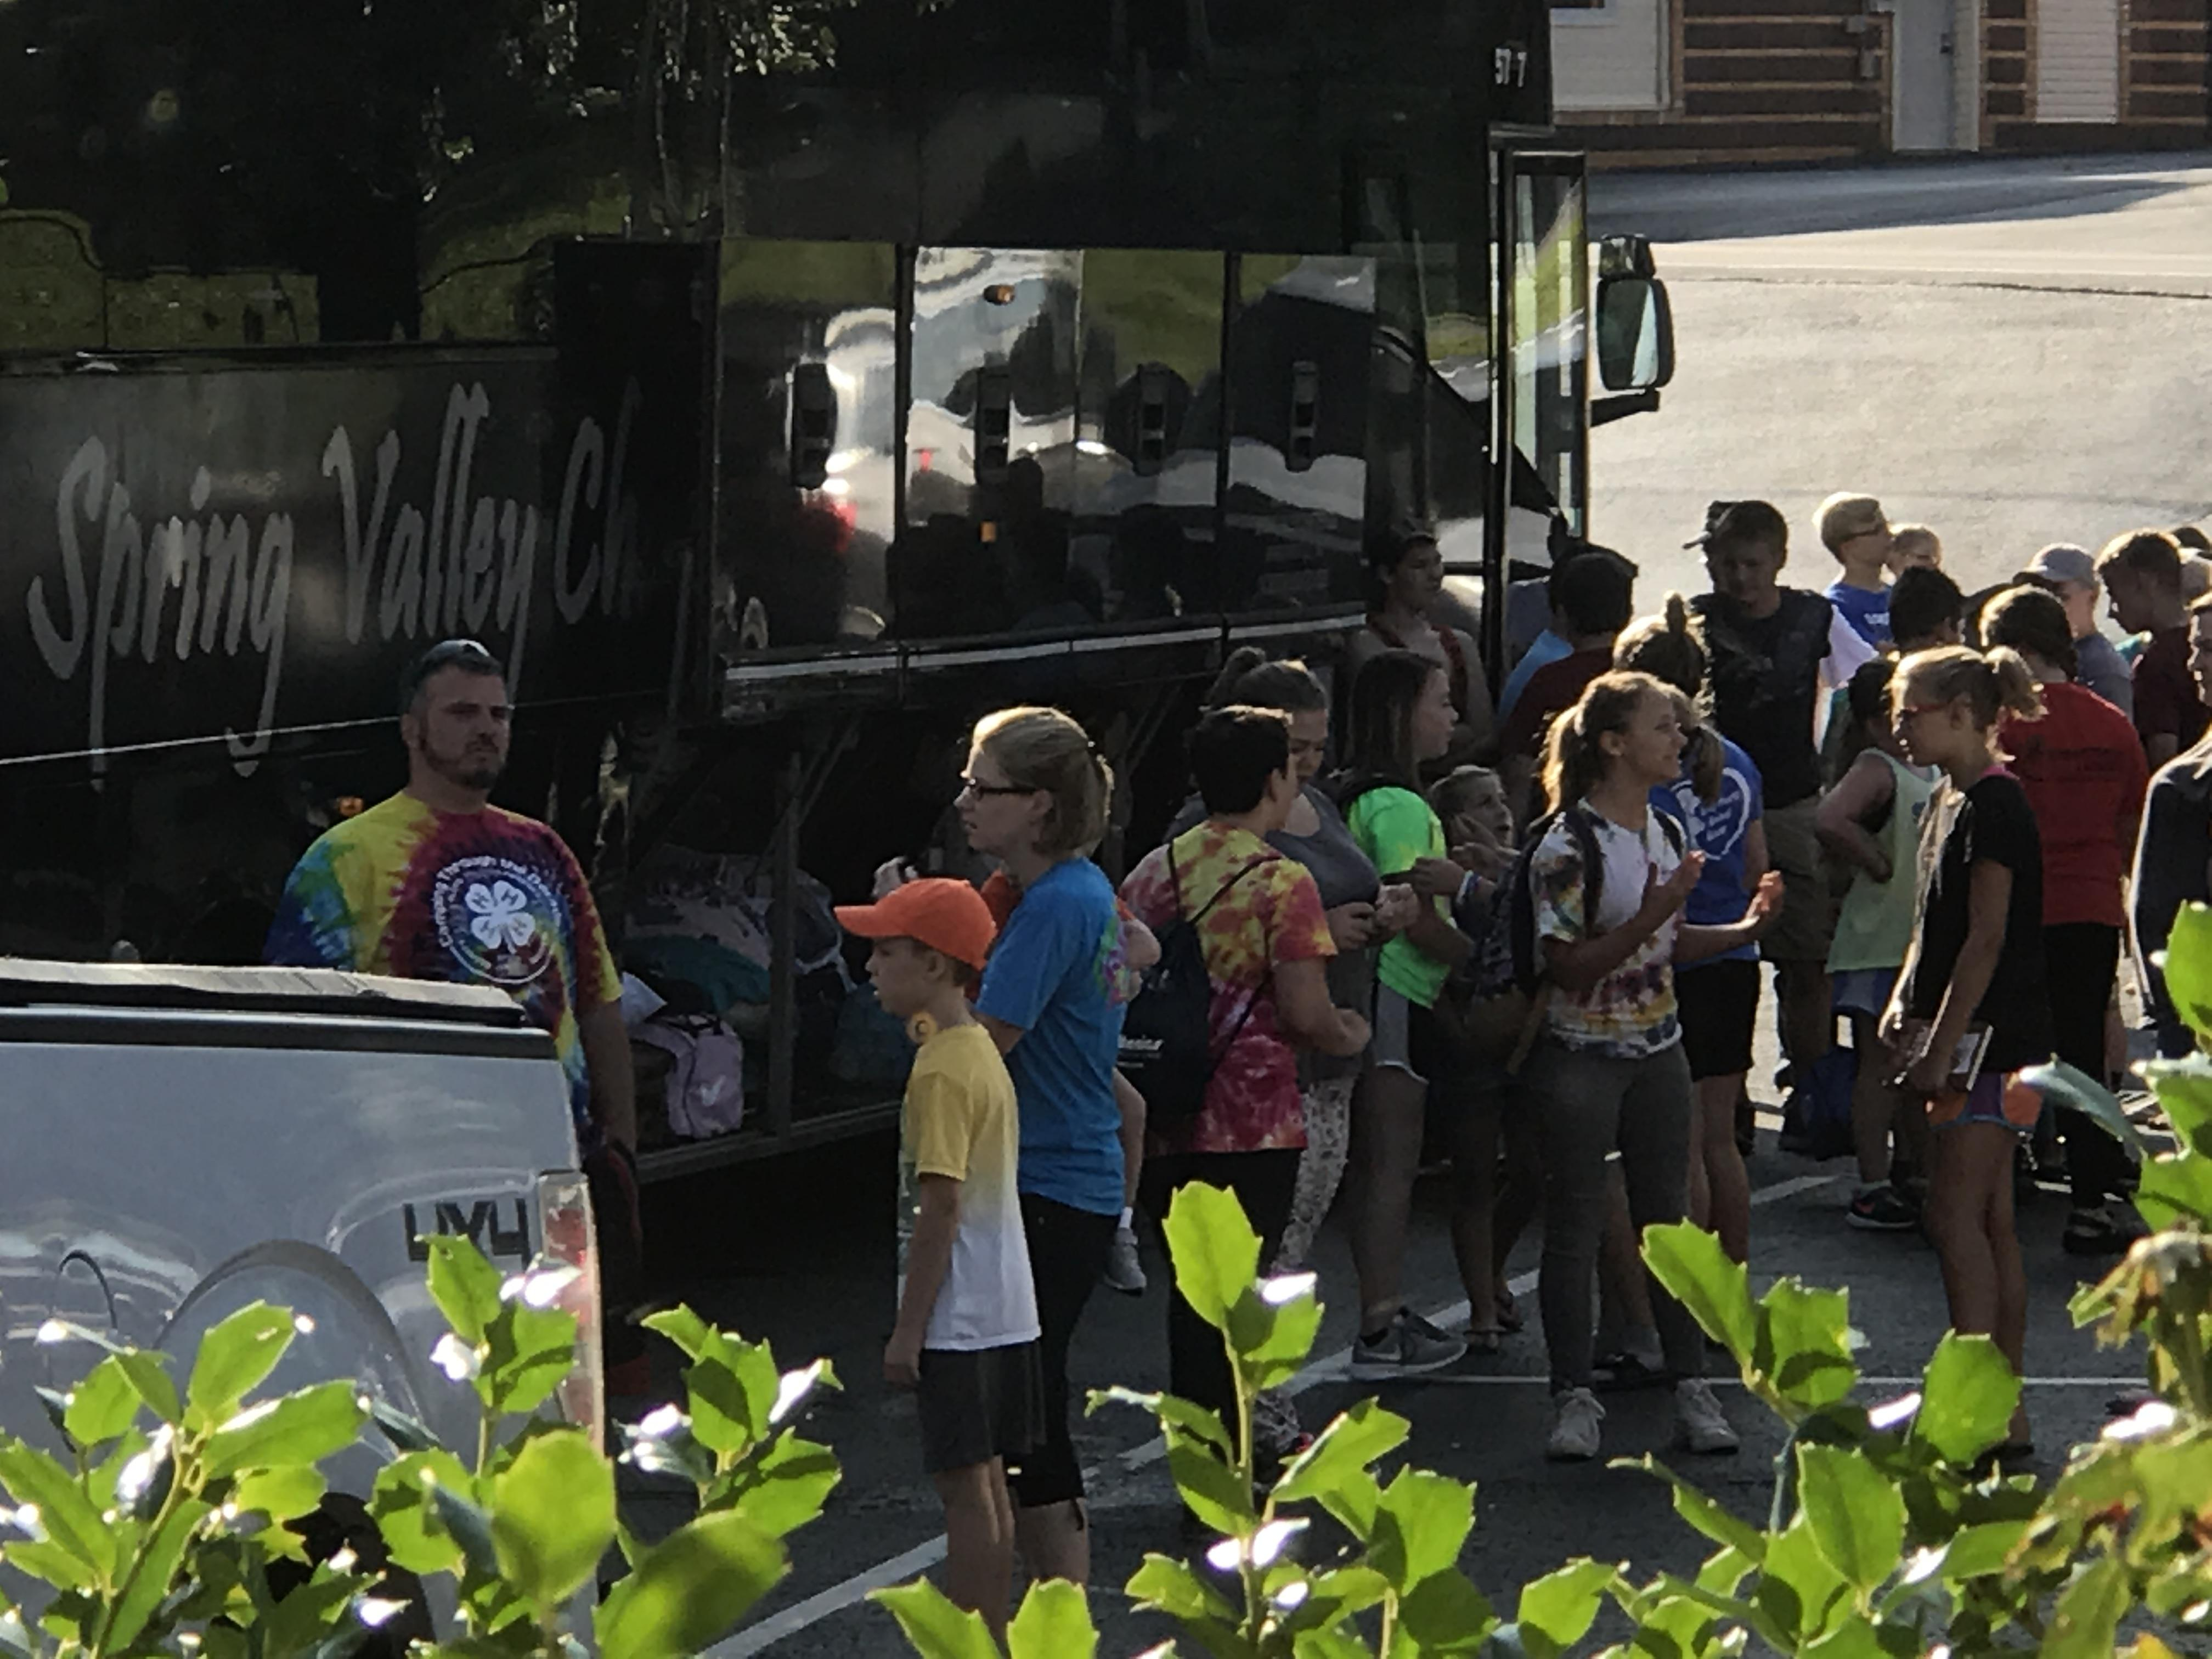 4-H campers are ready to board the bus.